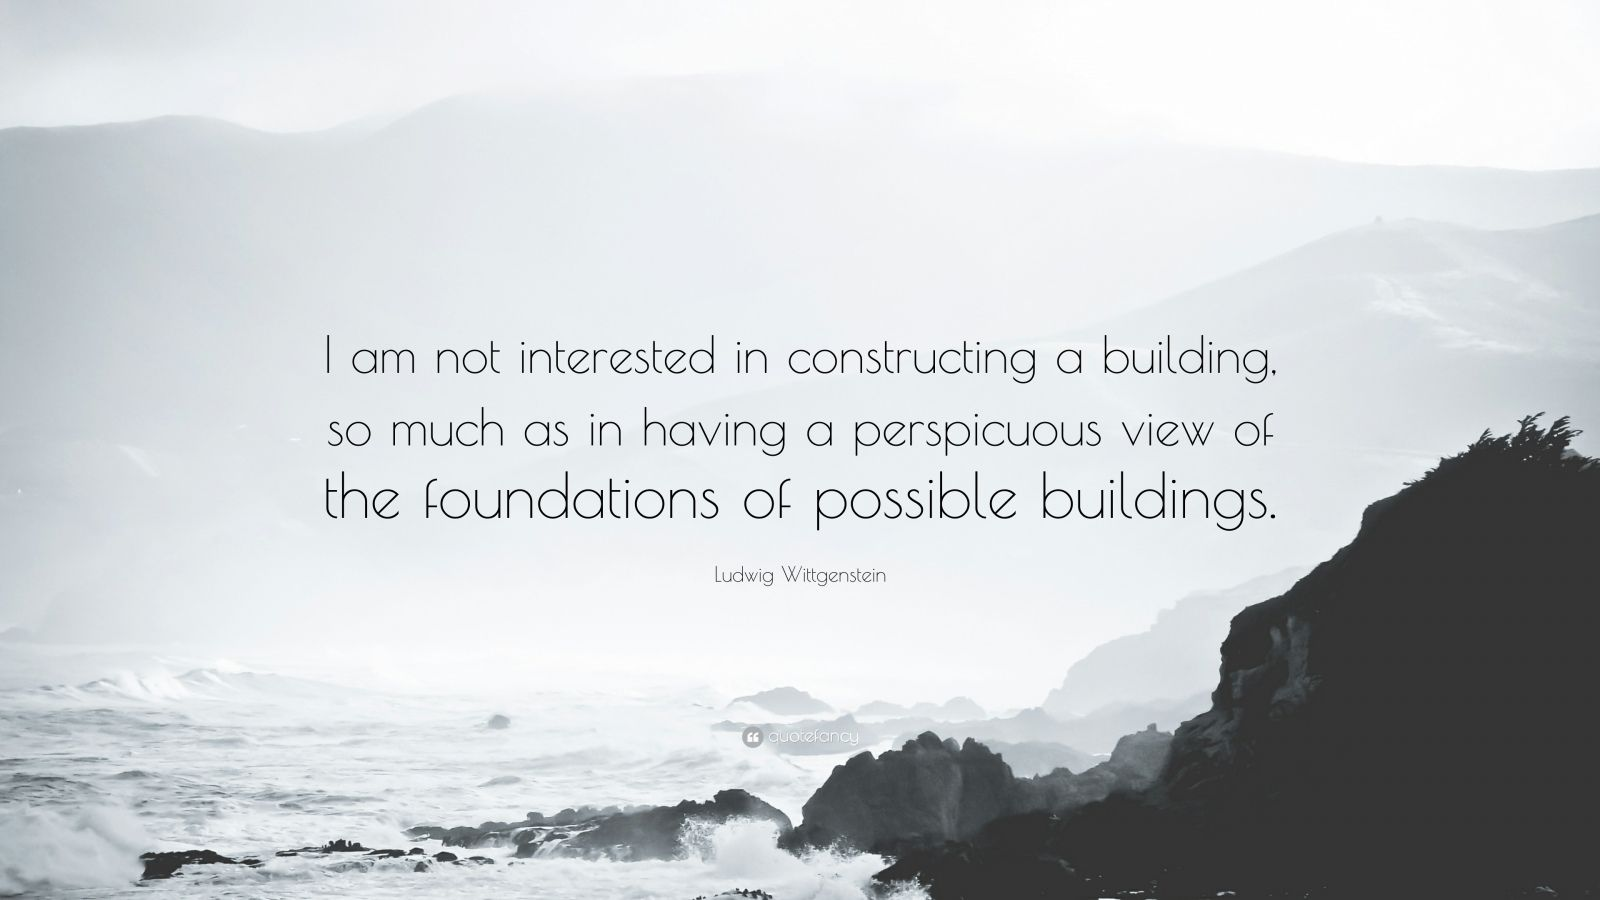 """Ludwig Wittgenstein Quote: """"I am not interested in constructing a building, so much as in having a perspicuous view of the foundations of possible buildings."""""""